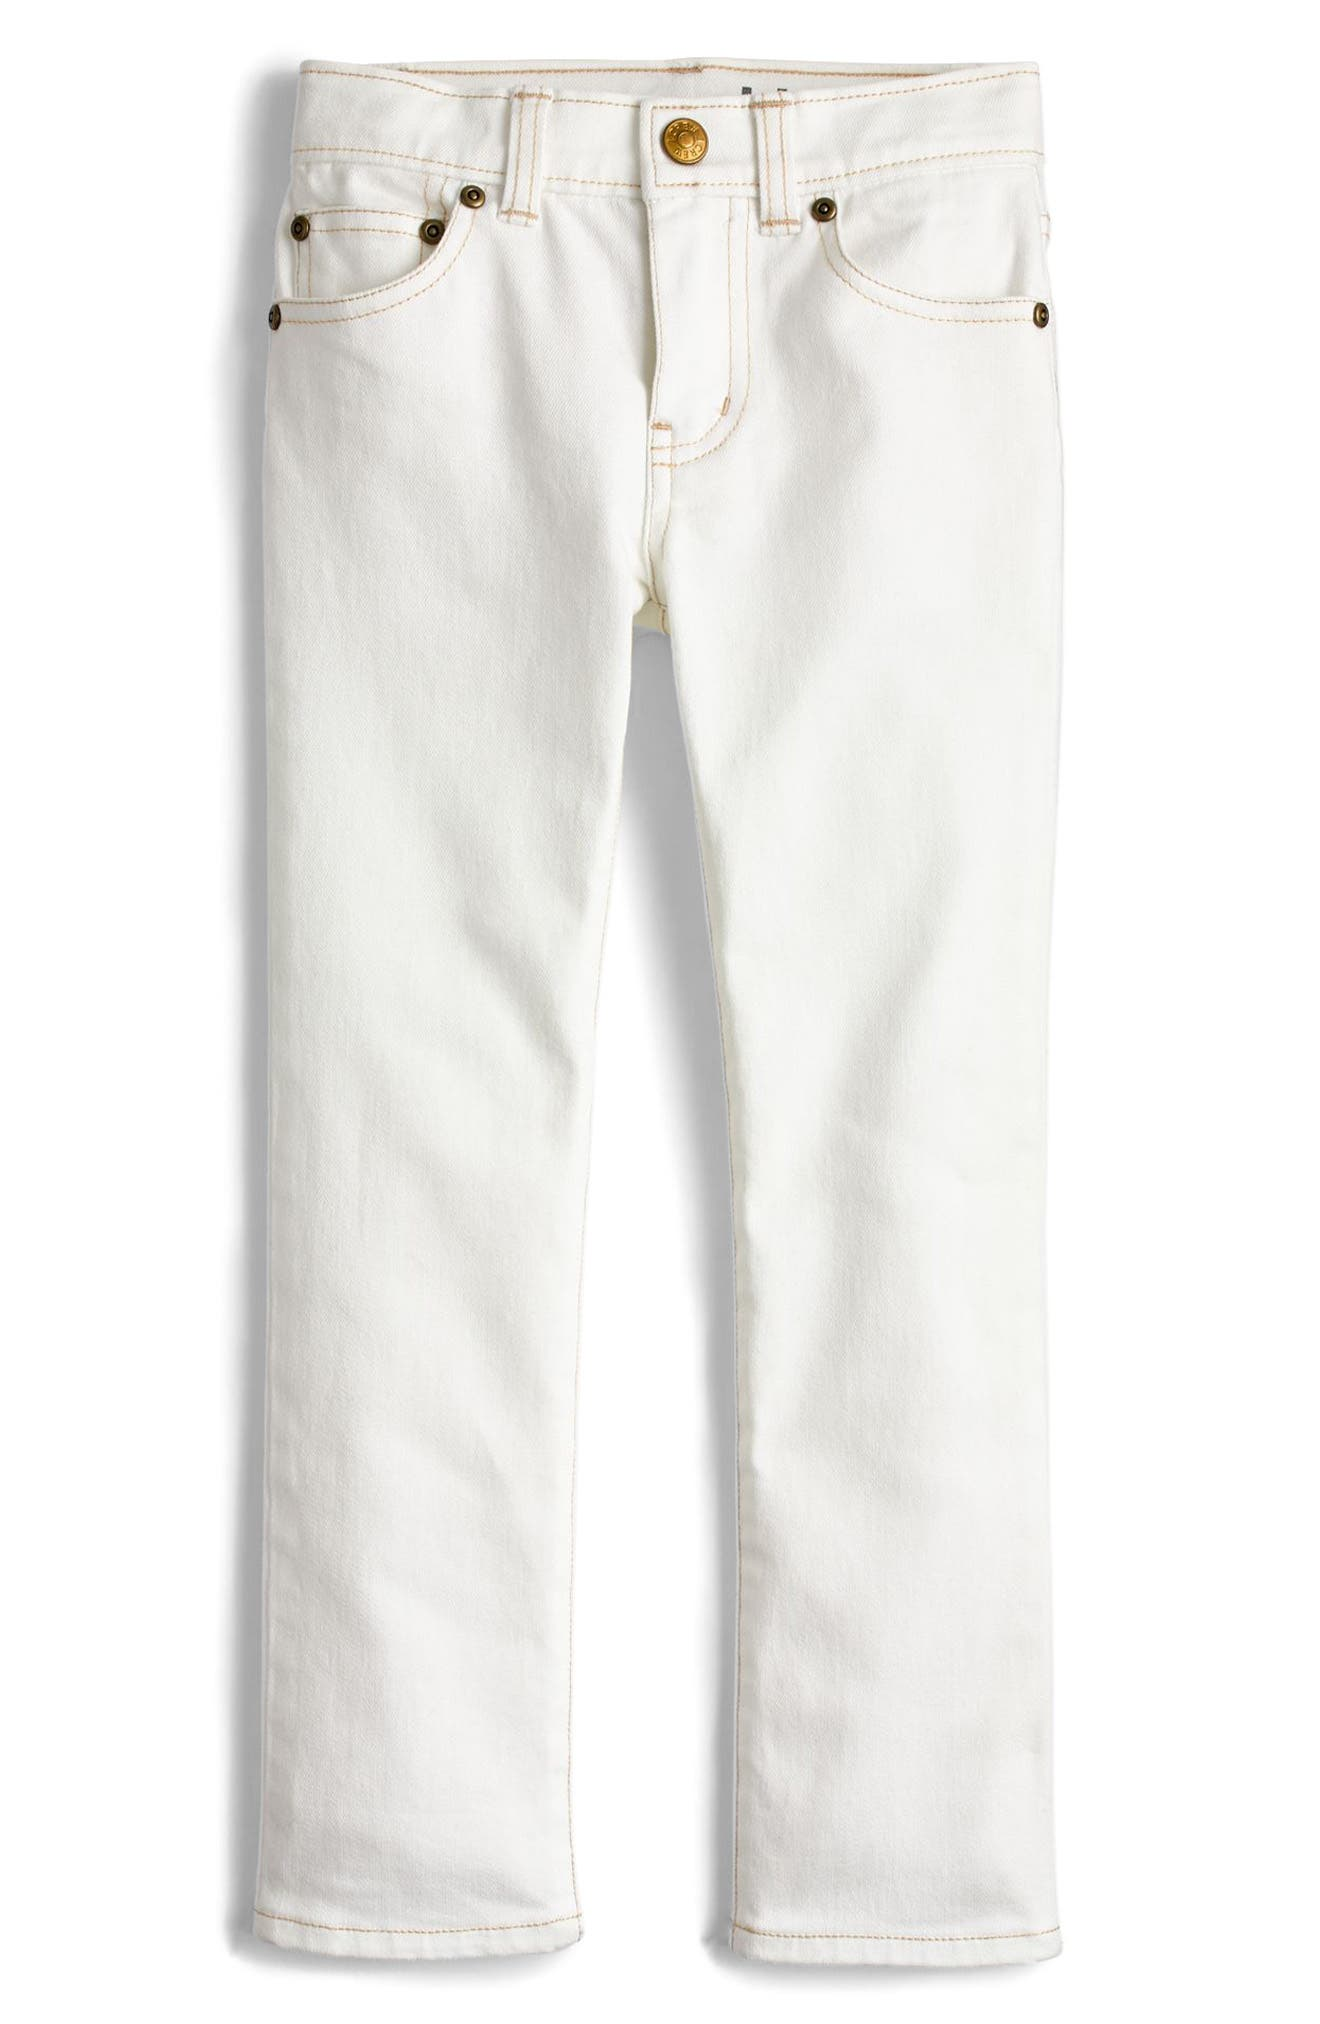 Main Image - crewcuts by J.Crew Stretch Skinny Fit Jeans (Toddler Boys, Little Boys & Big Boys)